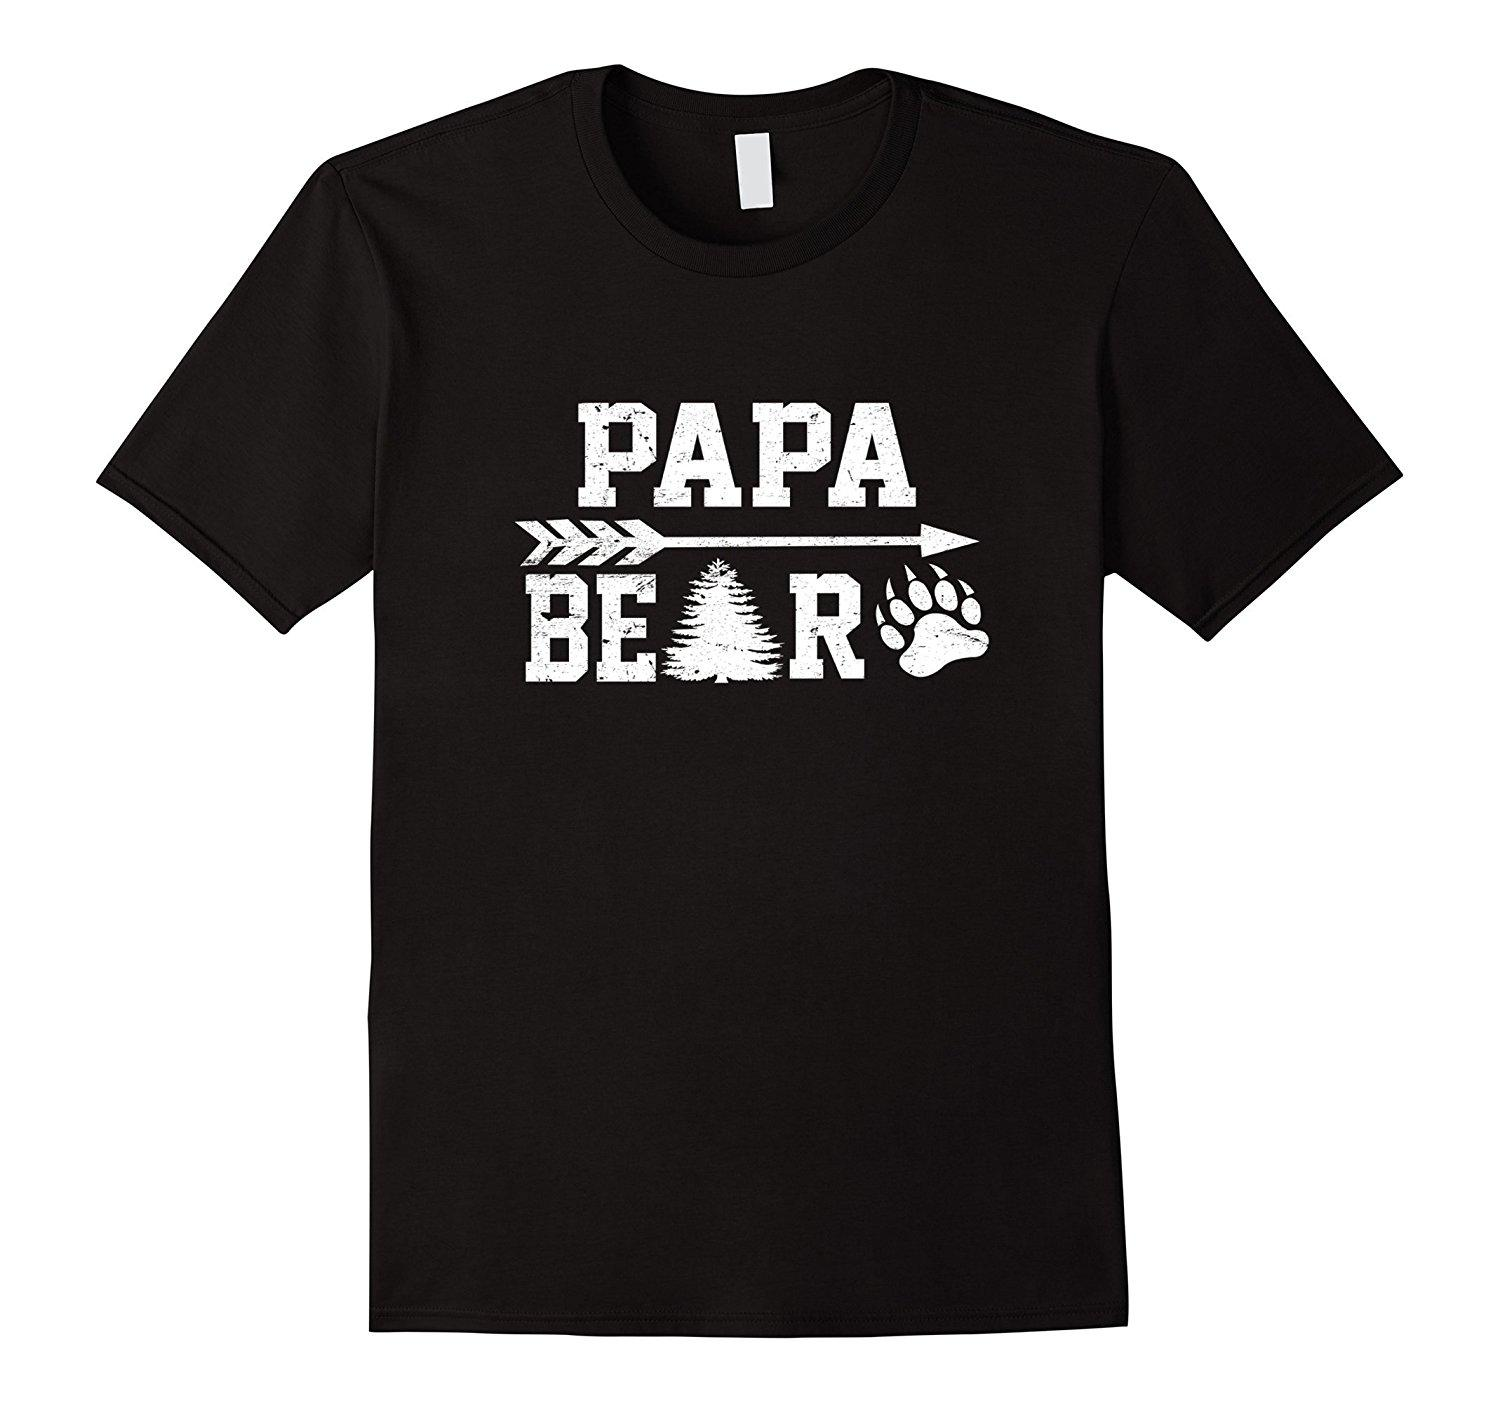 Claw Papa Christmas Pajamas Maching Awesome Tshirt Mens Shirts Short Sleeve Trend Clothing Ment Shirt Summer Style